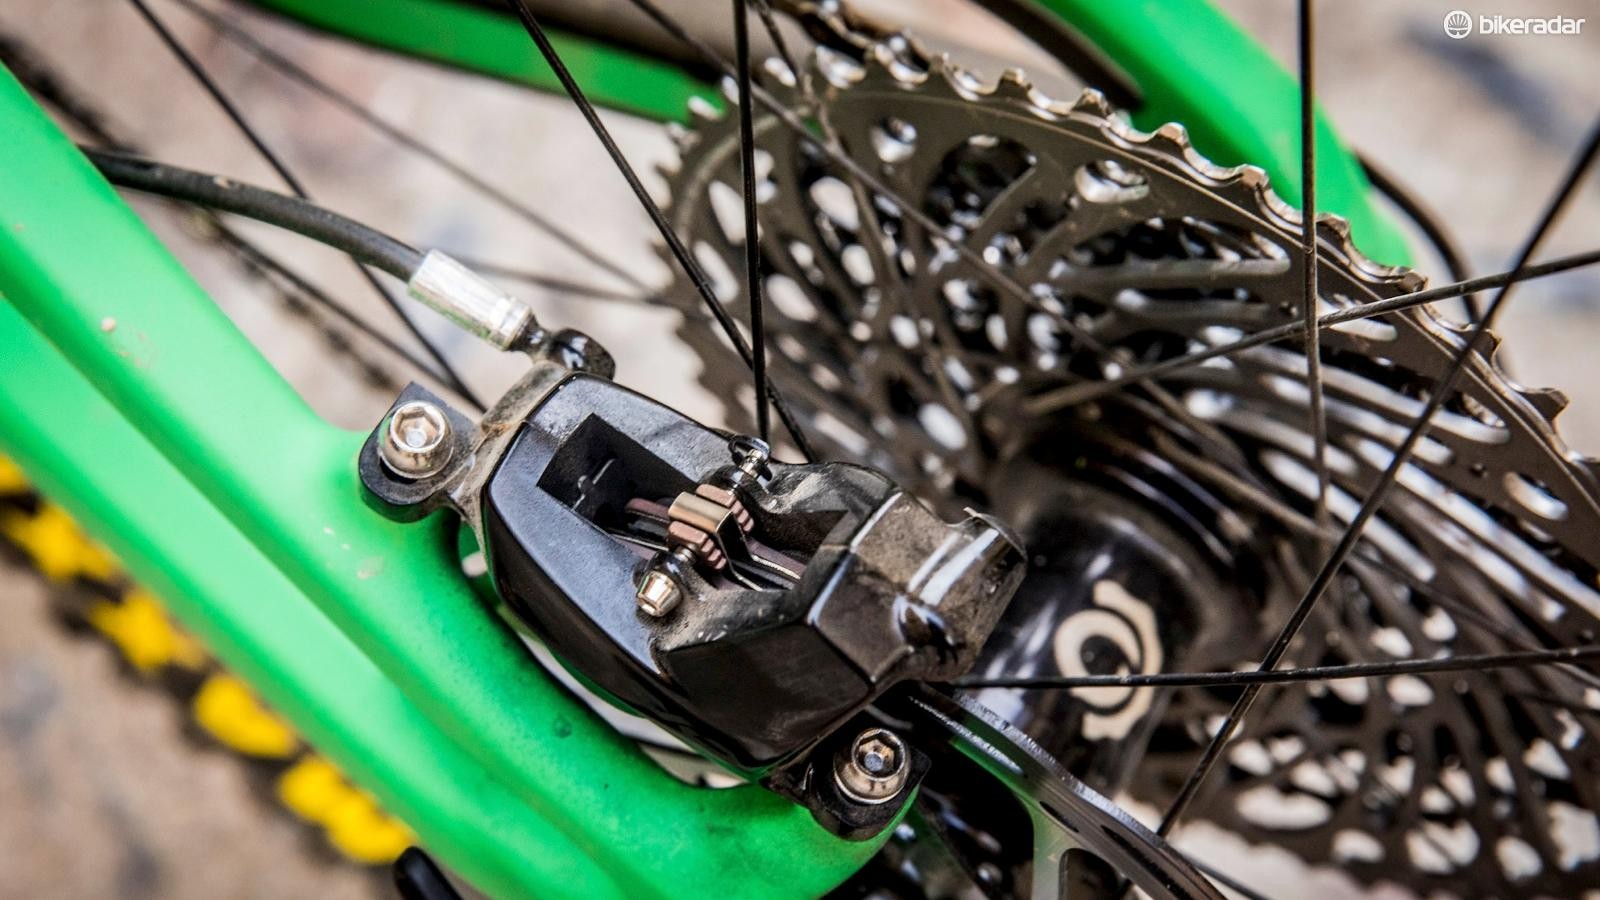 SRAM's powerful Code brakes feature throughout much of the Strega line-up and are paired with 180mm rotors